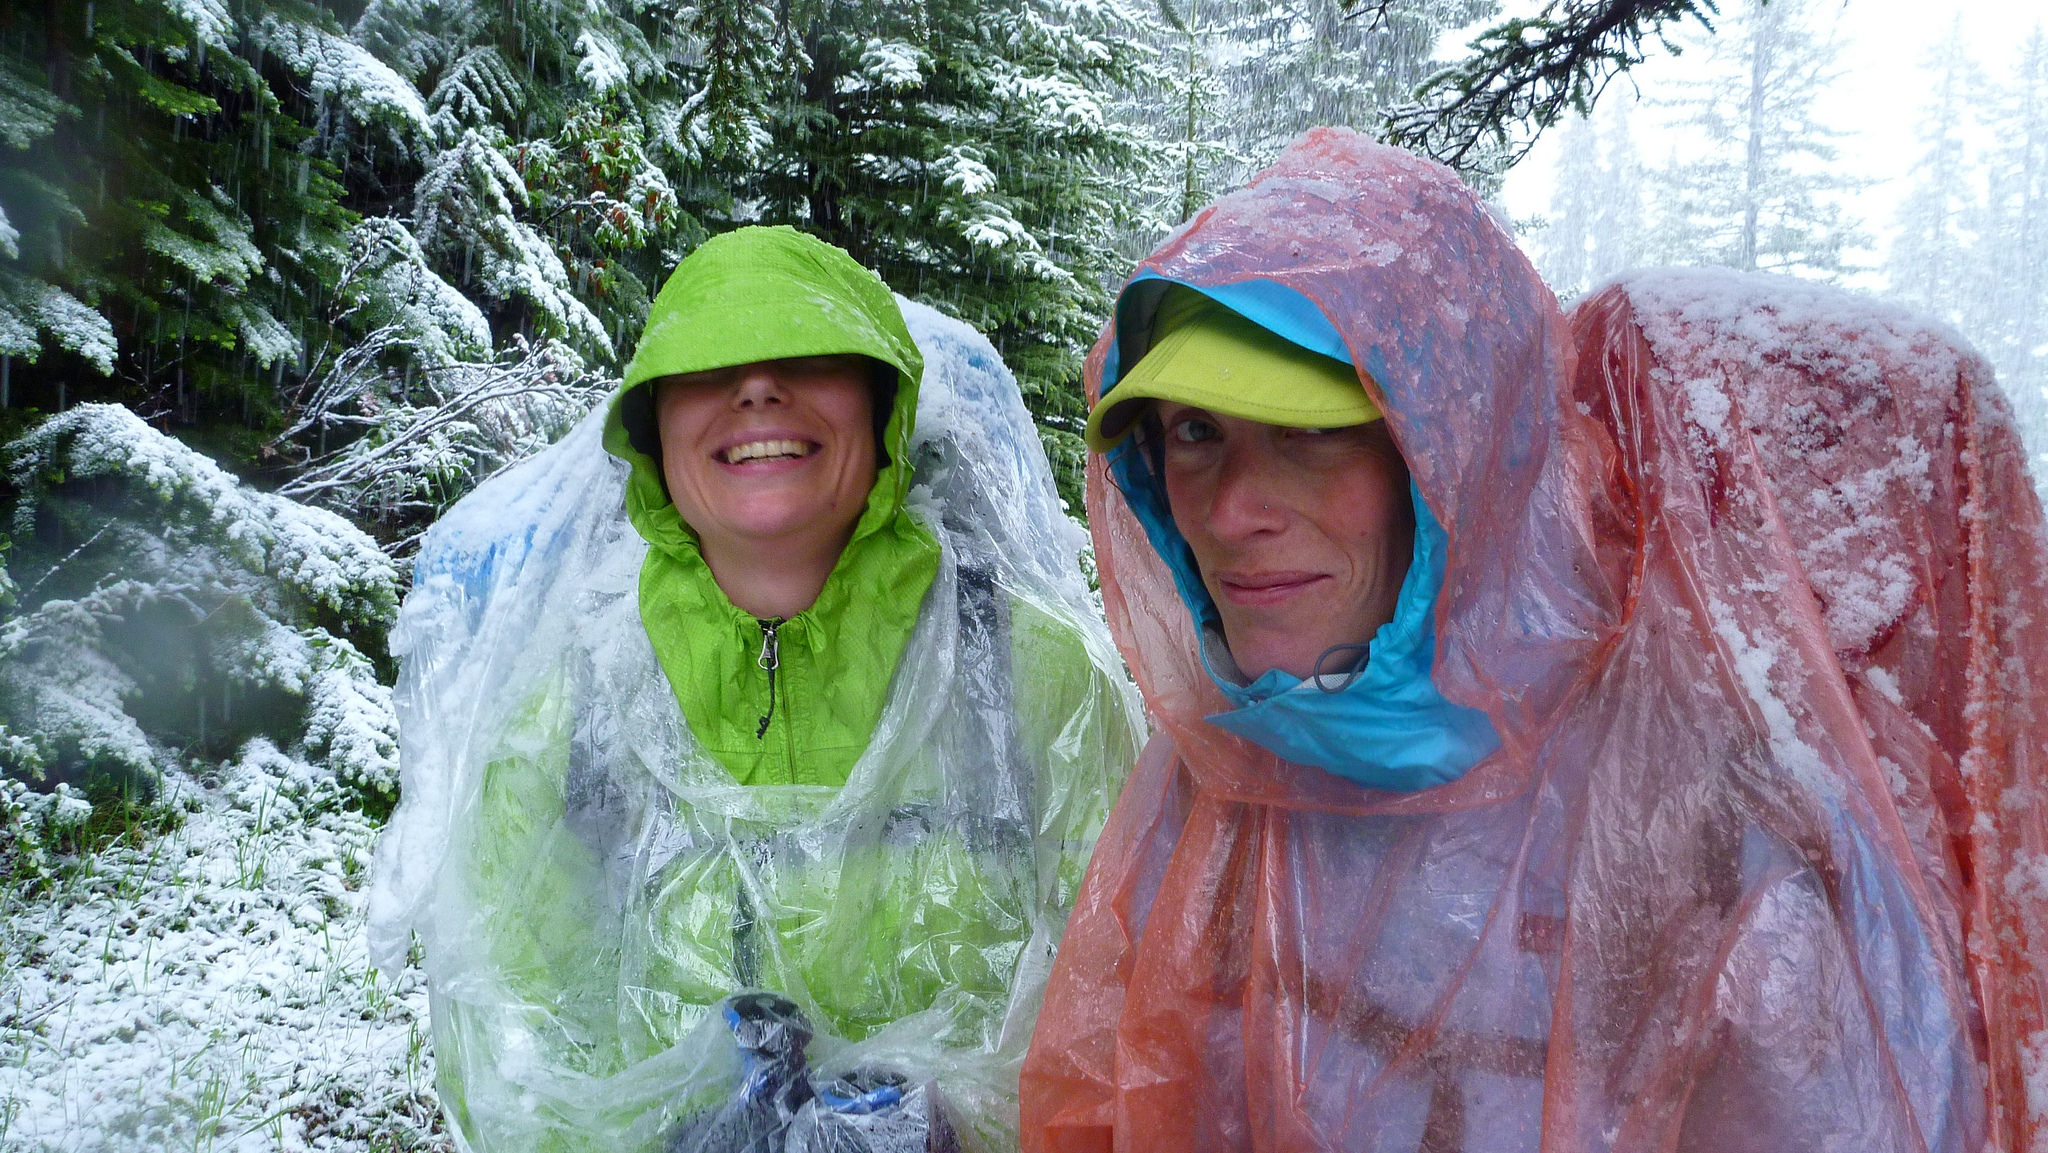 Ponchos are not just good for covering yourself, but also your travel accessories. Image credit:  Ribeka Kim / Creative Commons